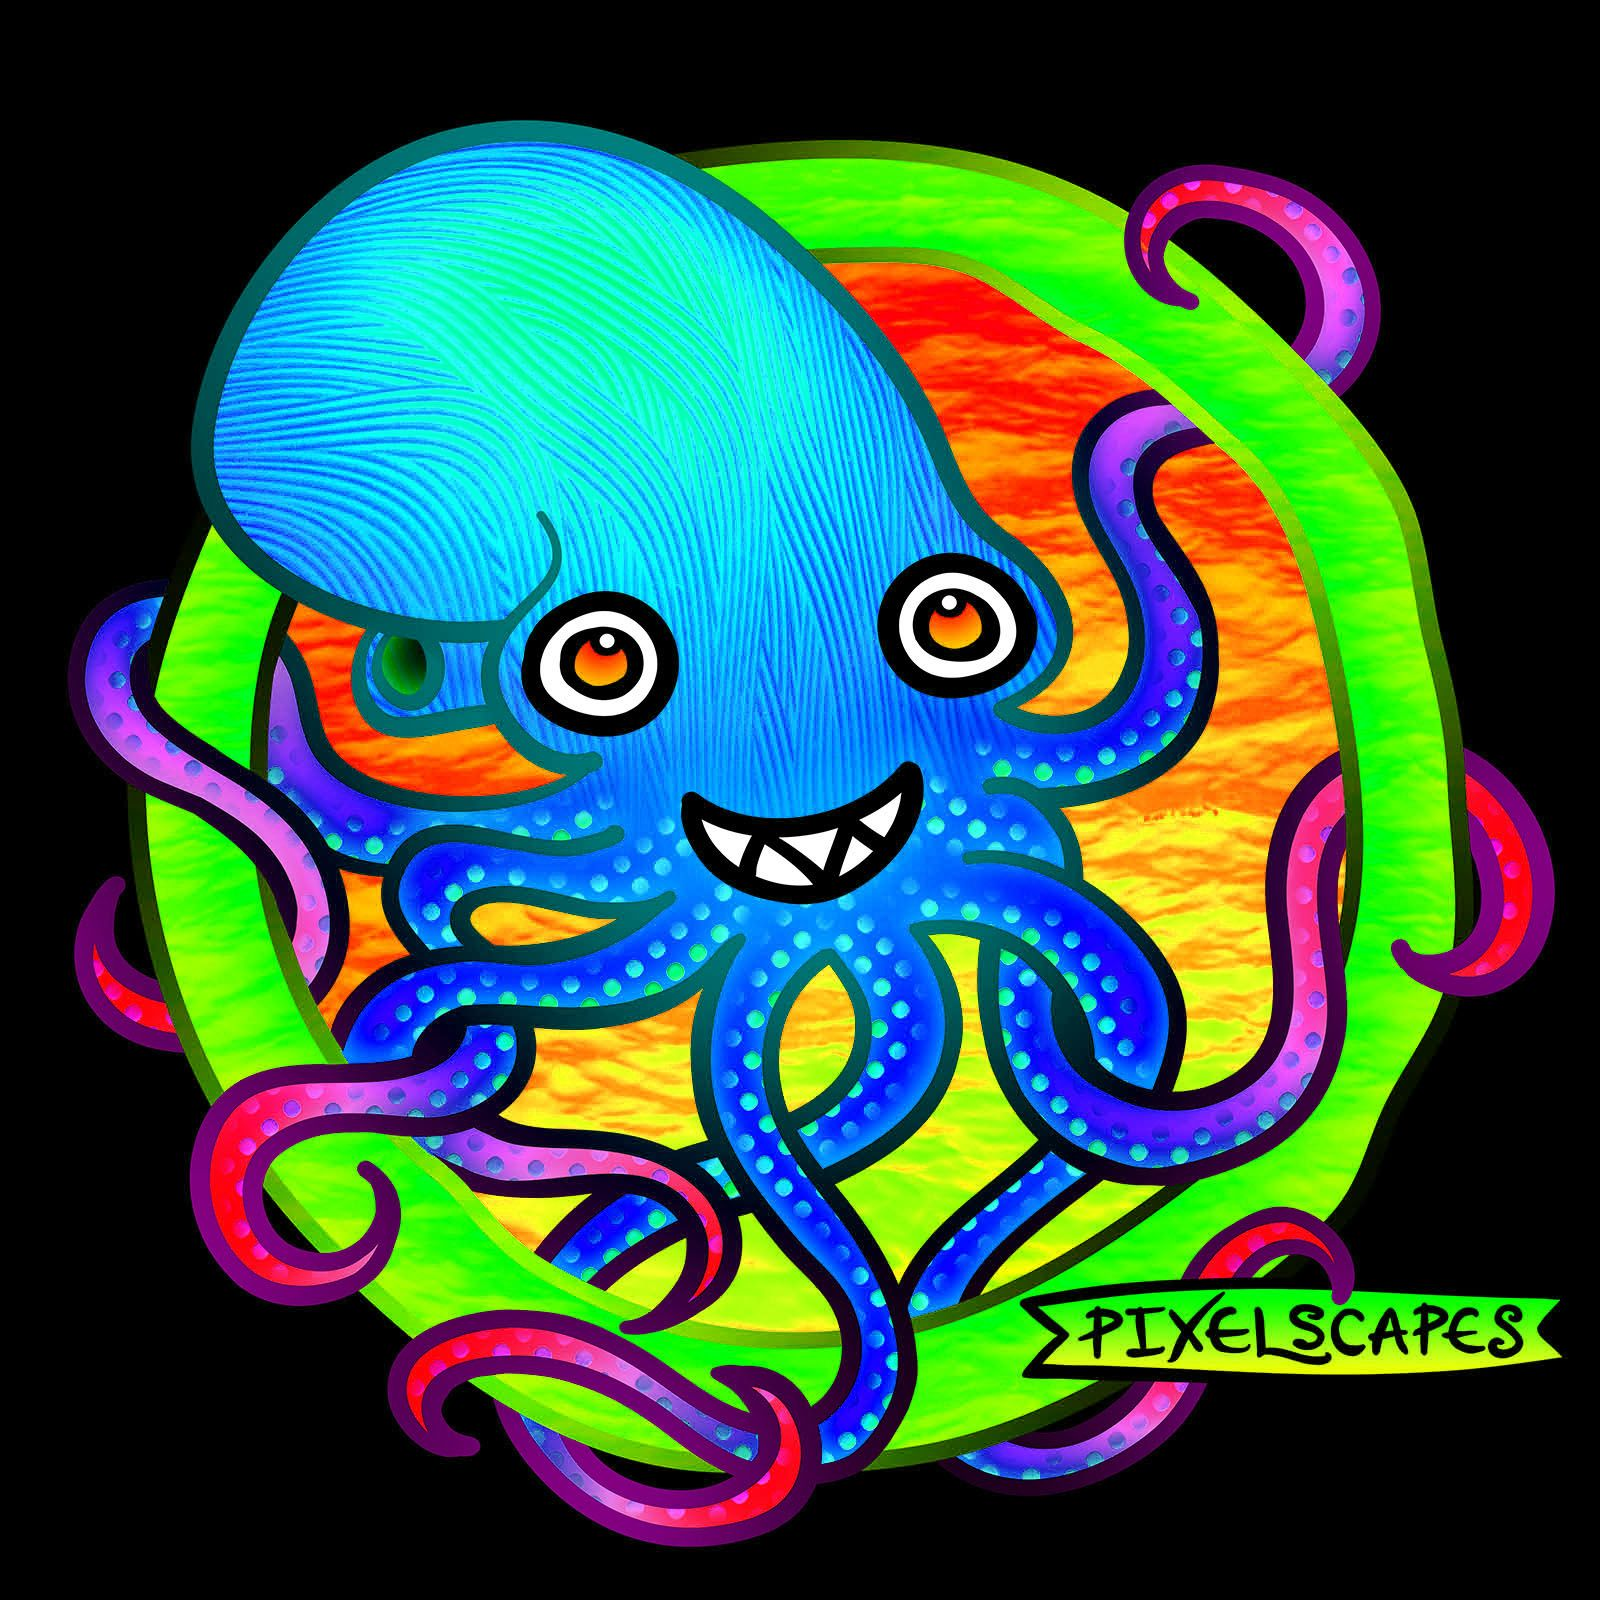 My Color Variant Octopus Art For Today Appreciate The Comments And Shares See The Original Here Http Www Pixelscapes Com Octop Octopus Art Art Monster Art